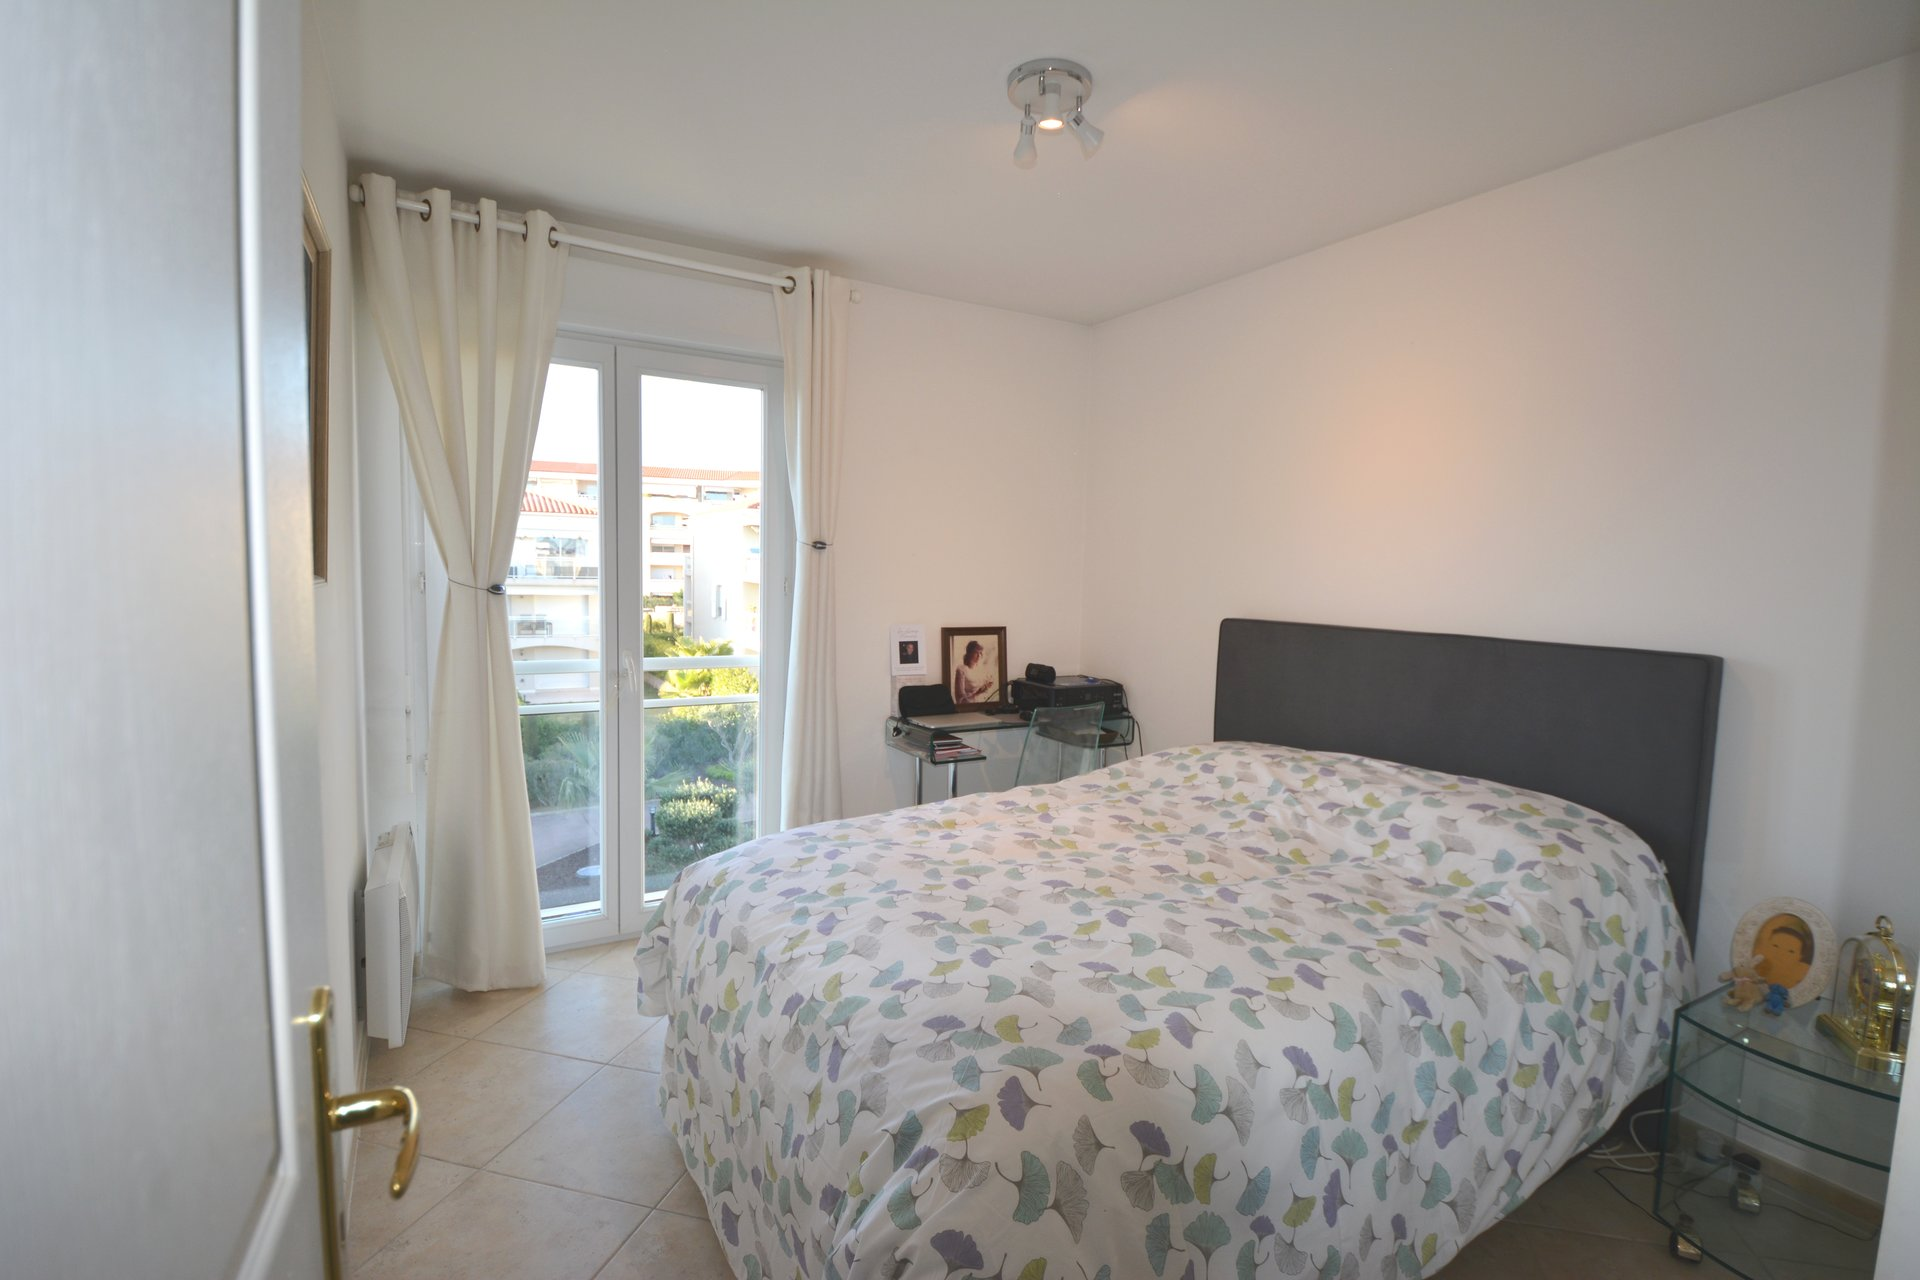 Apartment 2 bedrooms - Swimming pool - Juan les Pins